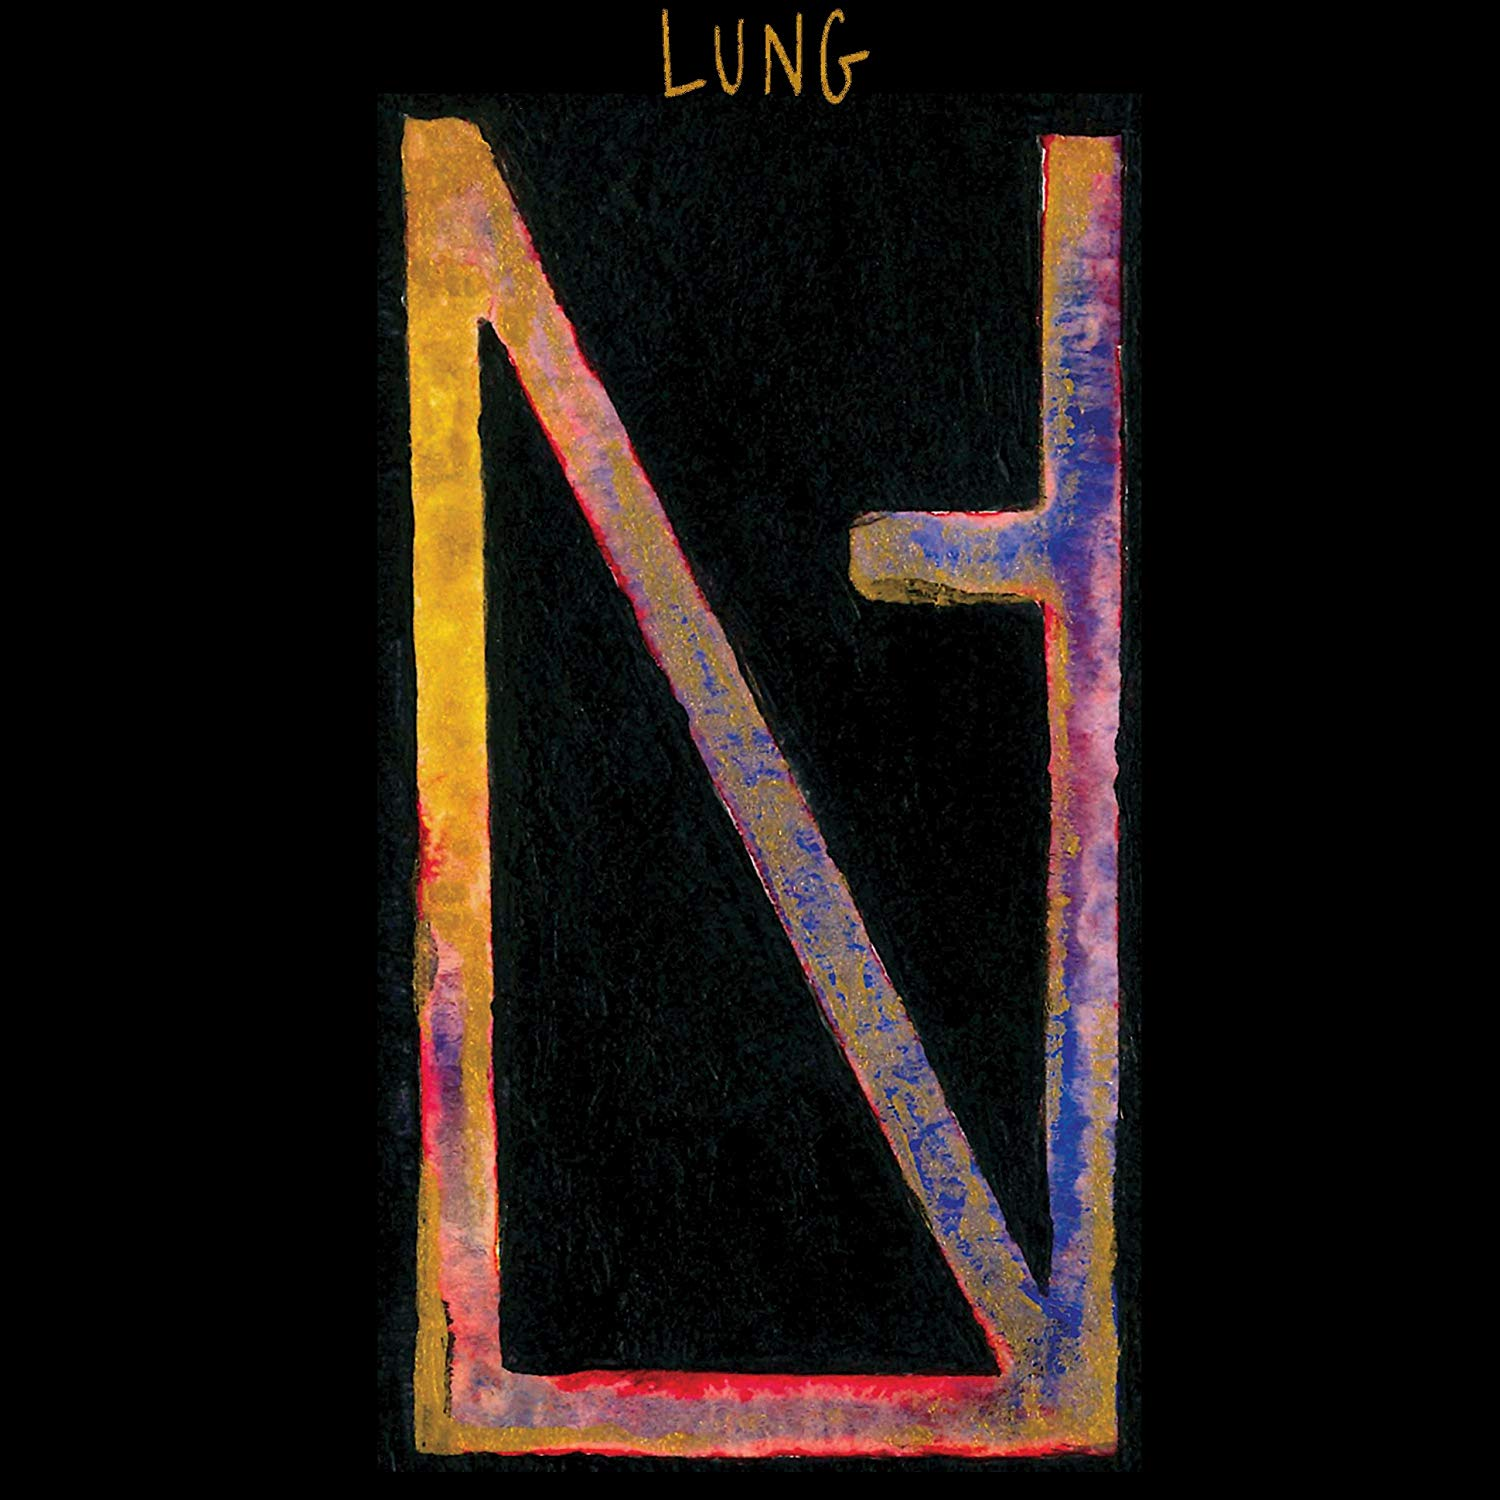 Lung - All The Kings Horses